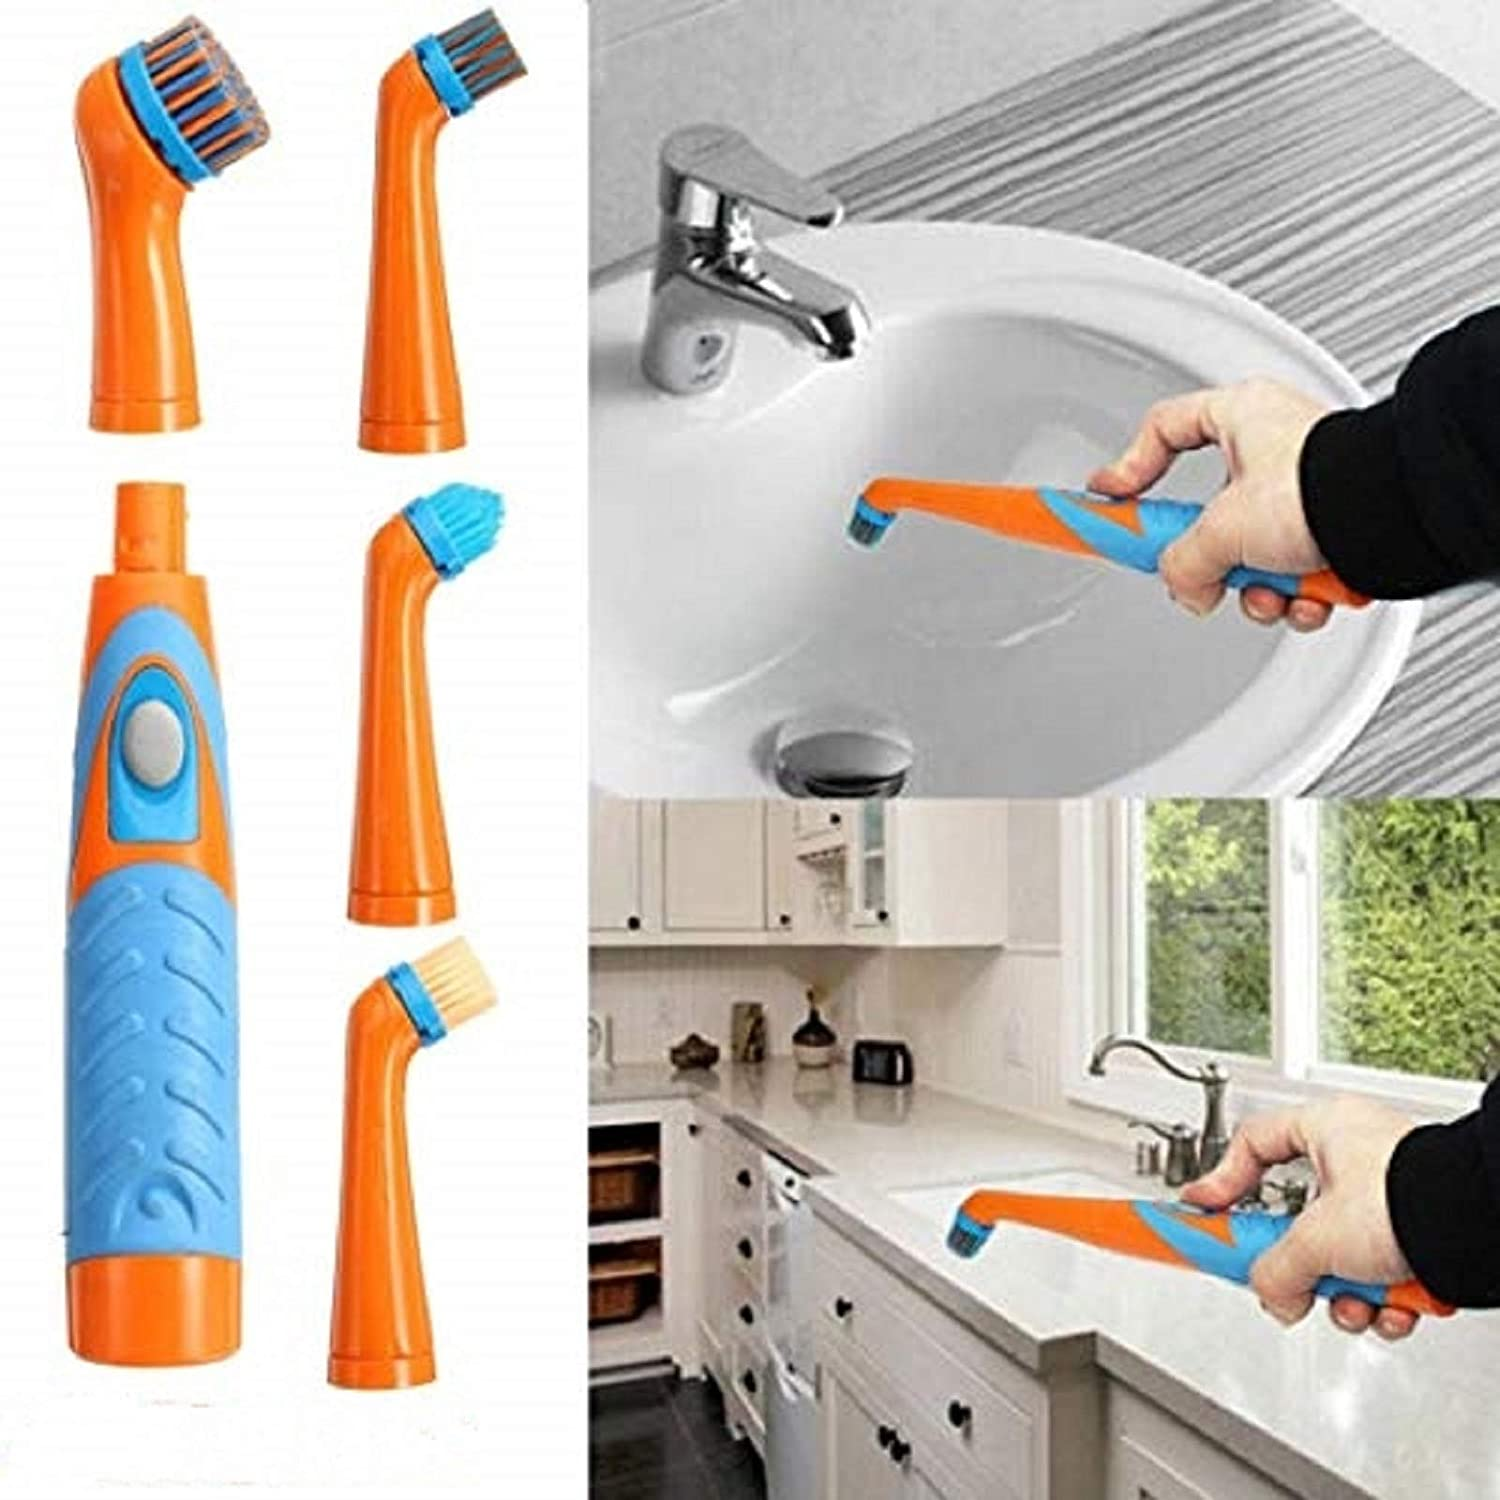 4 in 1 Electric Super Sonic Scrubber Cleaning Brush Home Bathroom Kitchen Tool C